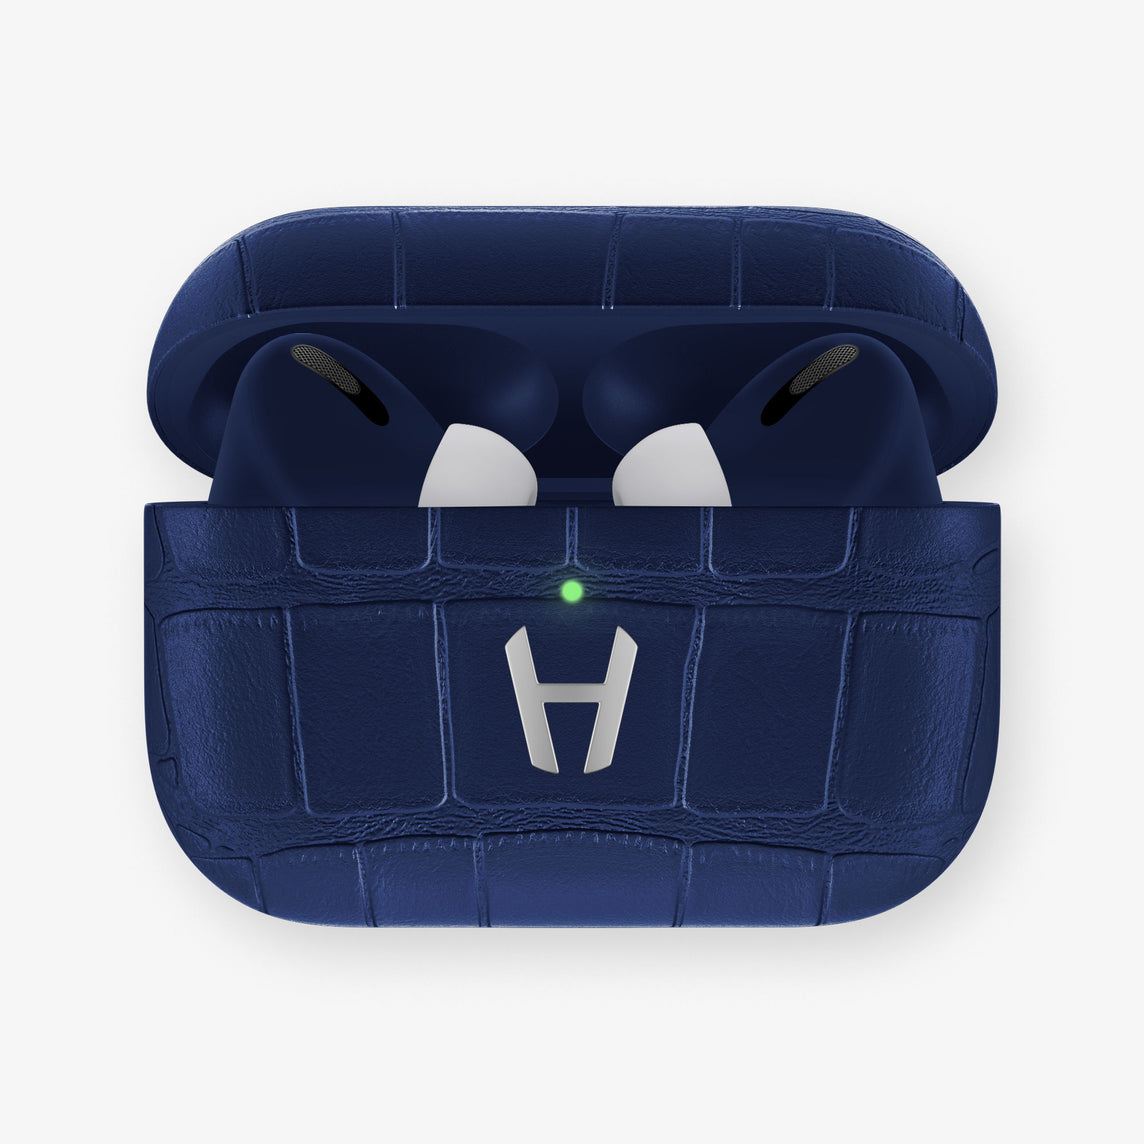 AirPods Pro Alligator AirPods Pro | Navy Blue - Stainless Steel